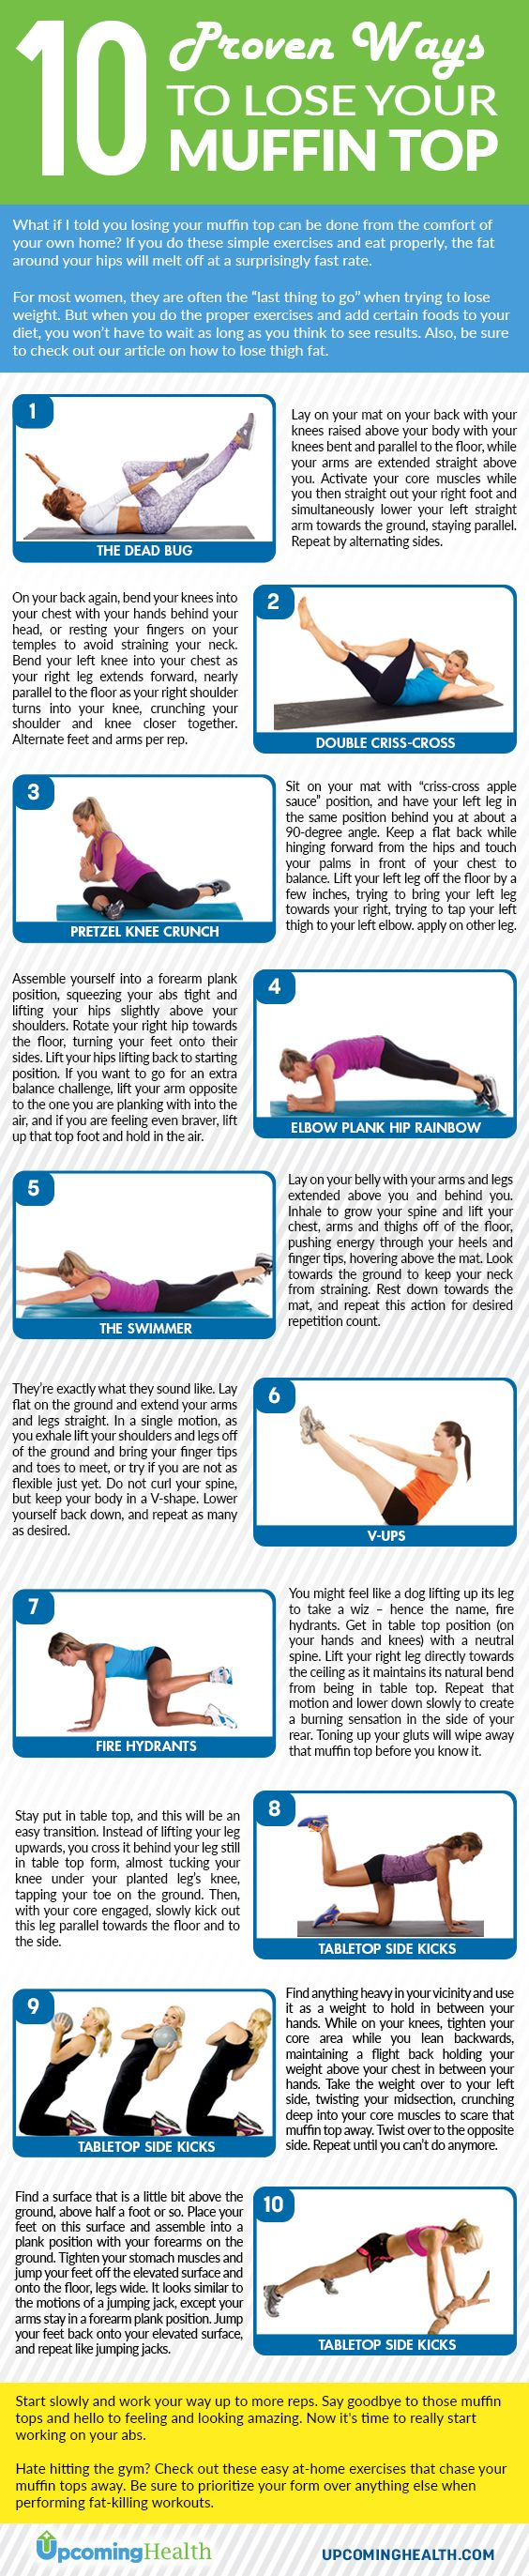 """For most women, the muffin top is often the """"last thing to go"""" when trying to lose weight. But when you do the proper exercises and add certain foods to your diet, you won't have to wait as long as you think to see results. Let's see how!"""